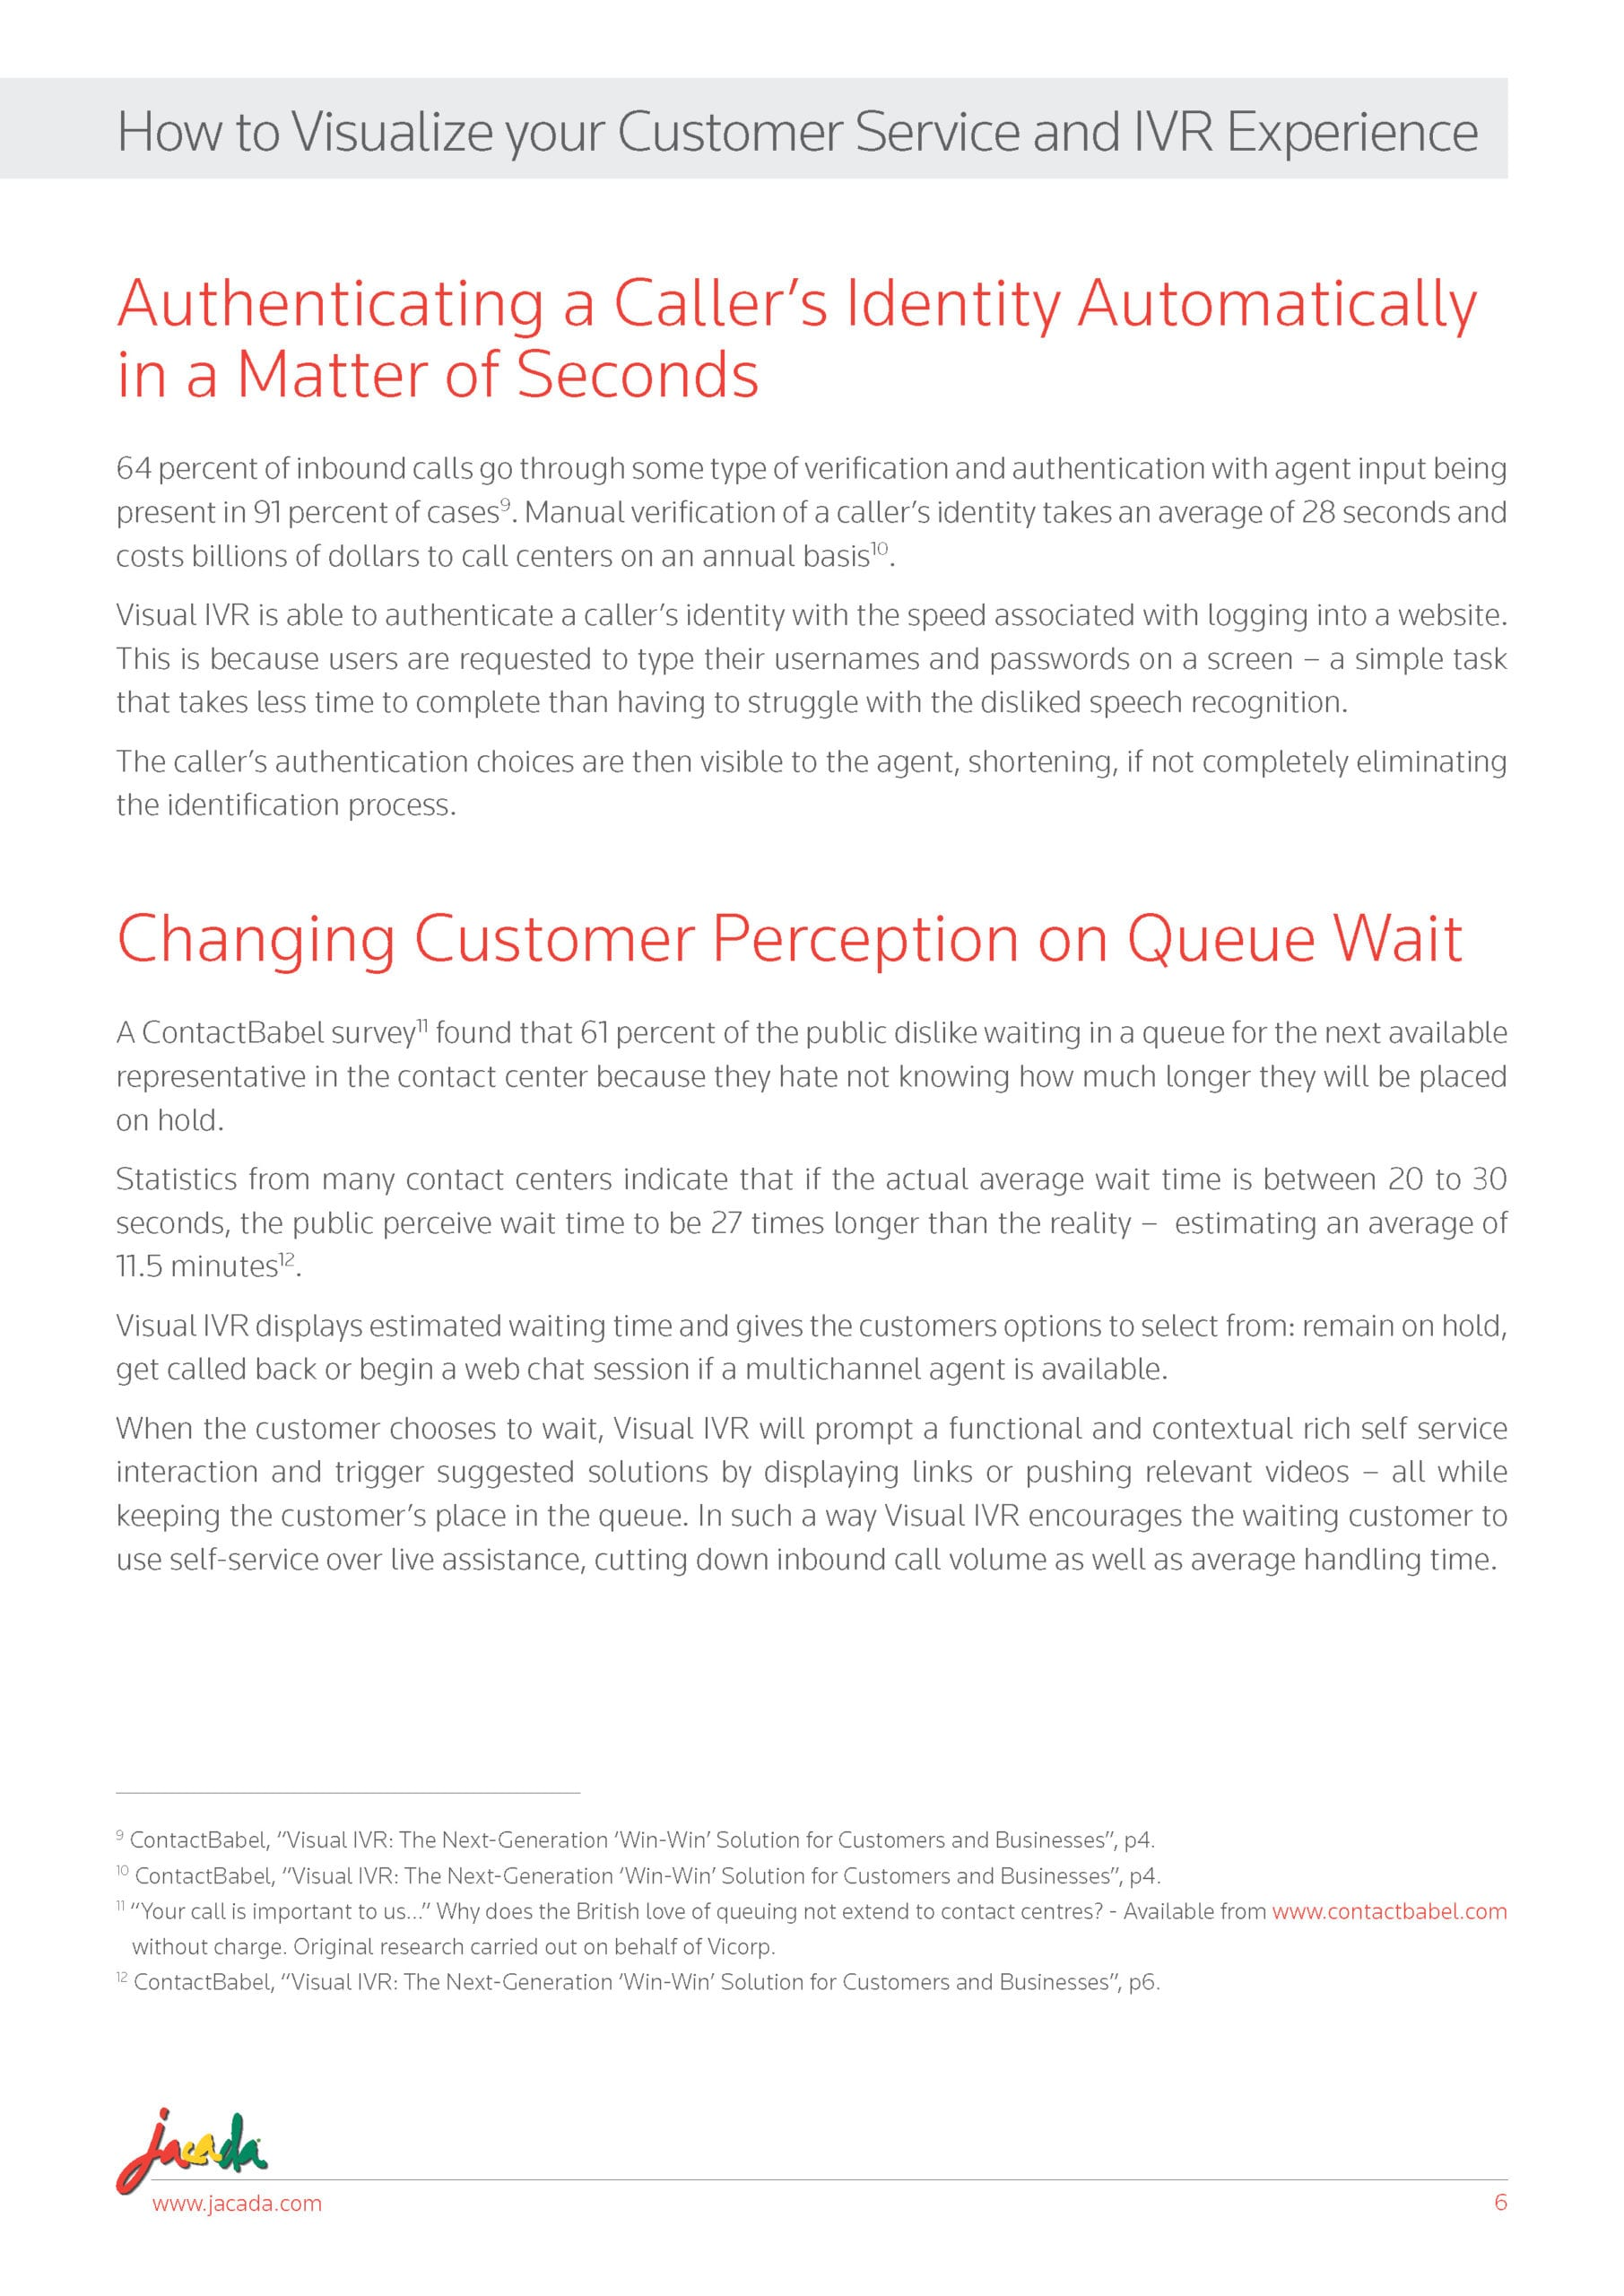 White_Paper_How_to_Visualize_your_customer_service_IVR_experience_Page_11_Page_06a